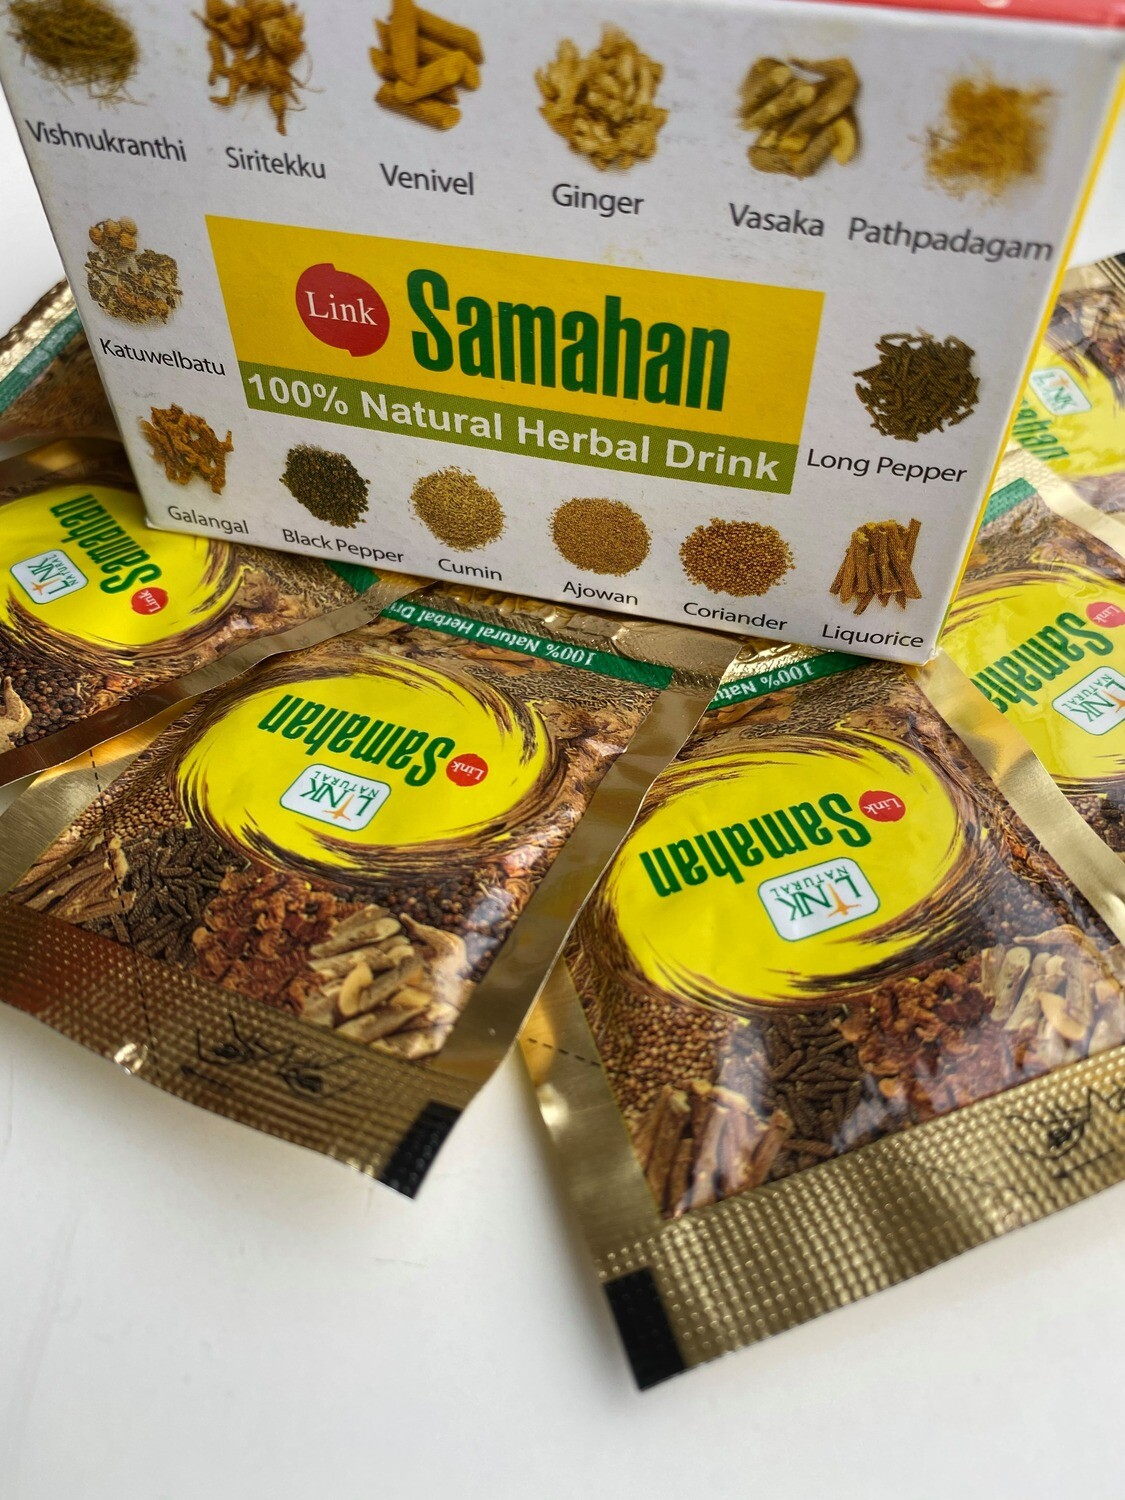 Link Natural Samahan kruiden thee